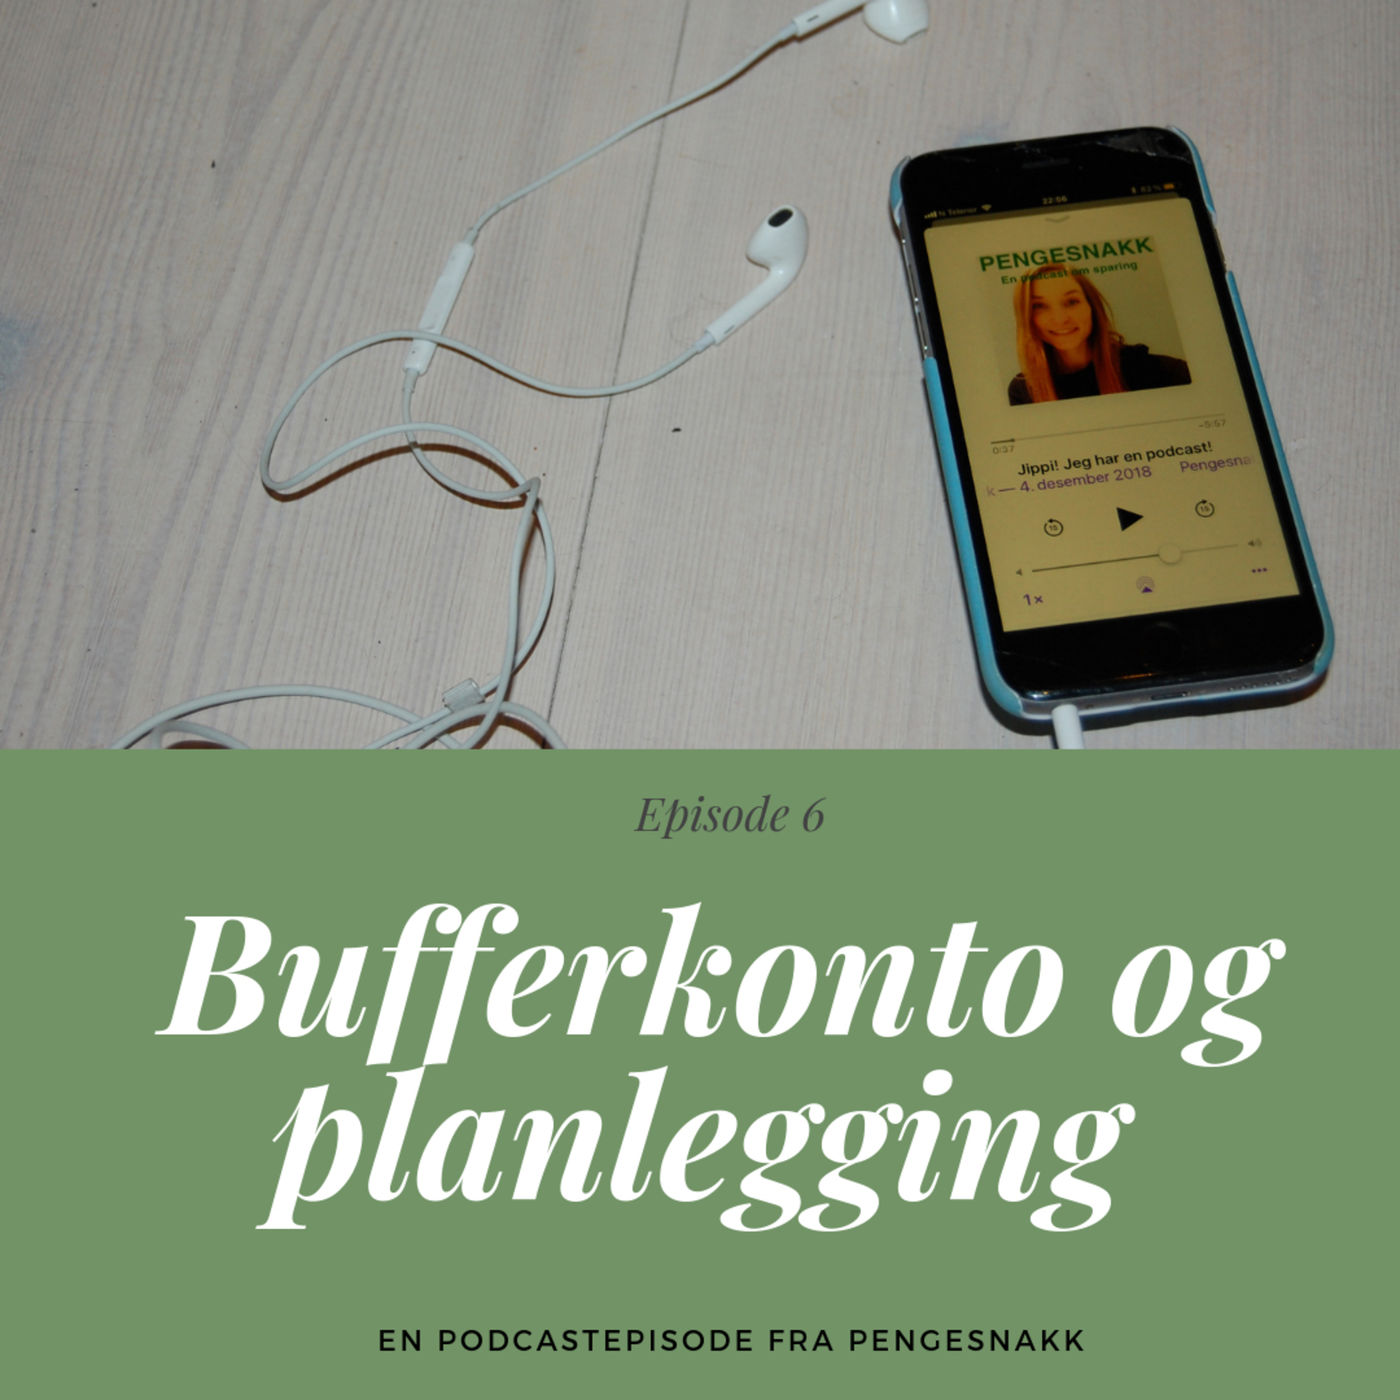 Bufferkonto og planlegging